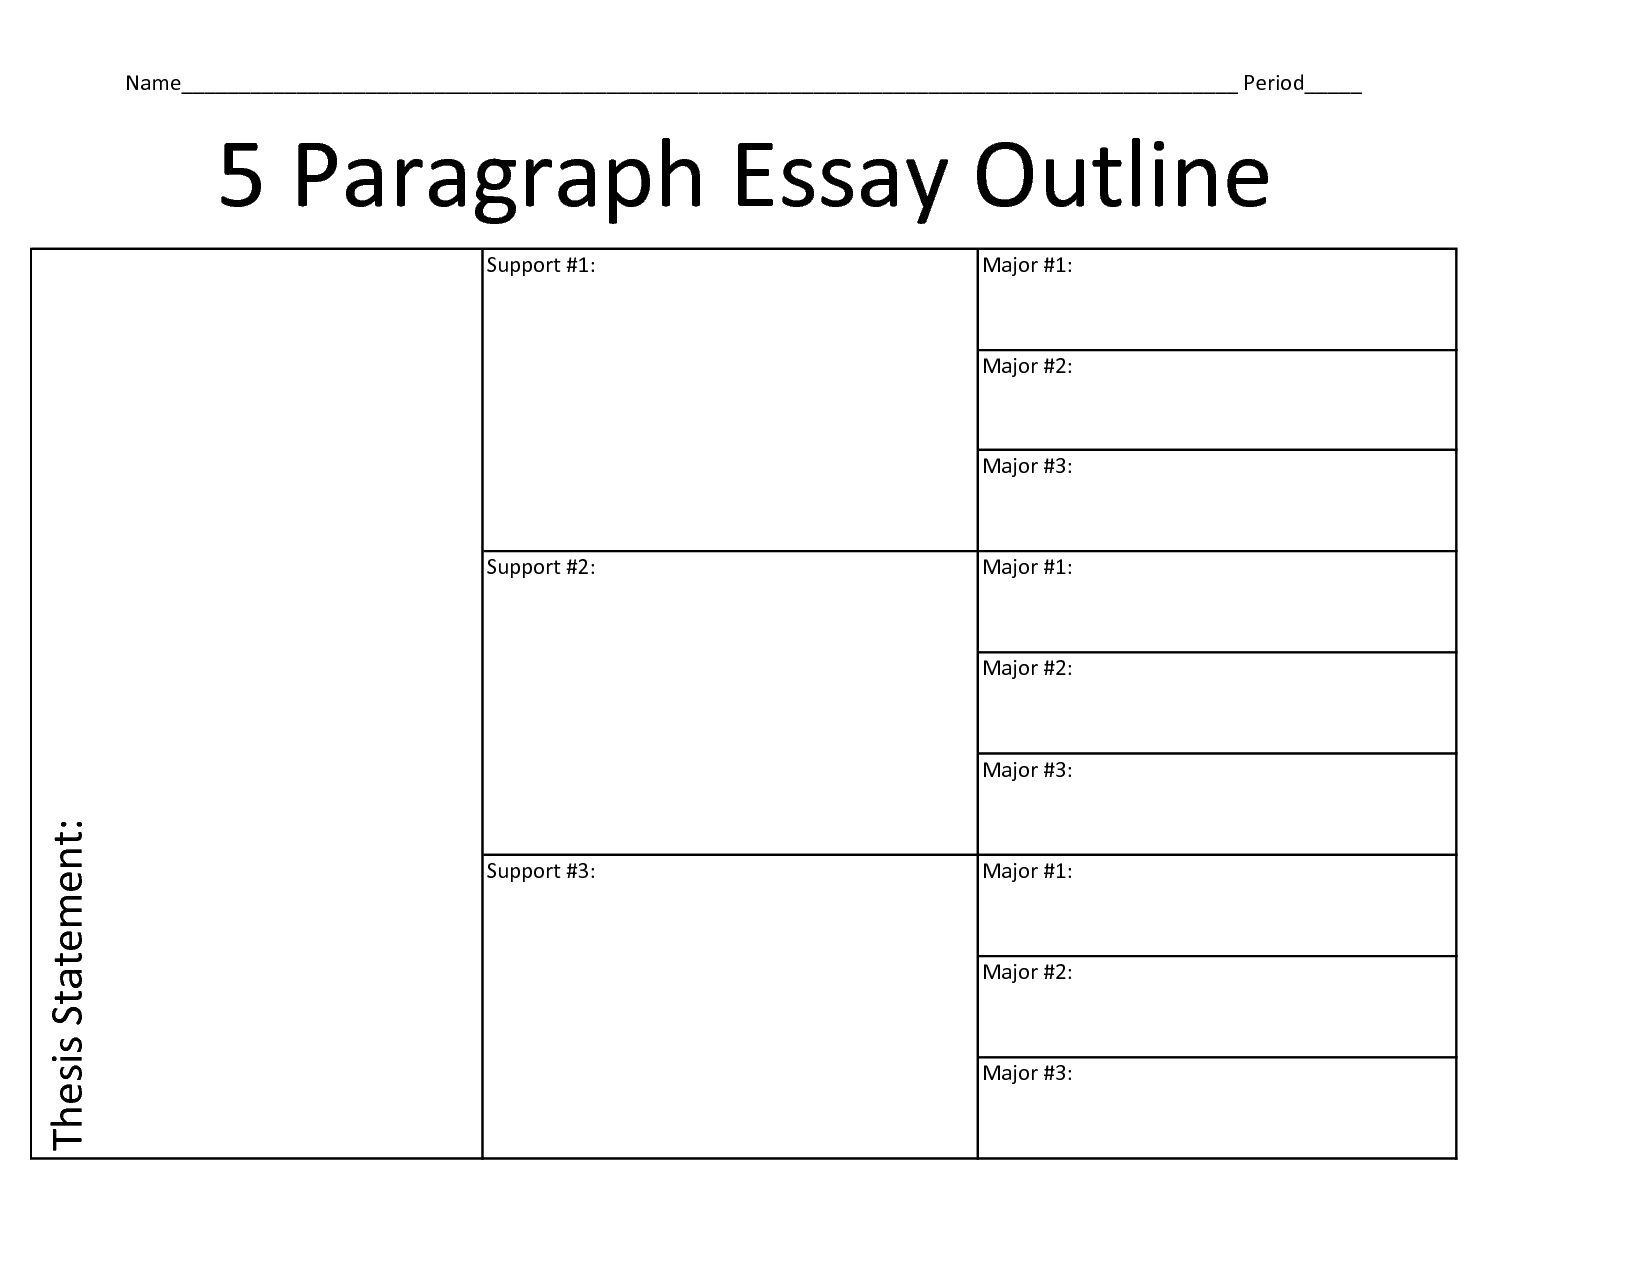 019 Graphic Organizers Executive Functioning Mr Brown039s Paragraph Essay Outline L Amazing 5 Five Pdf Template Printable Topics 5th Grade Full